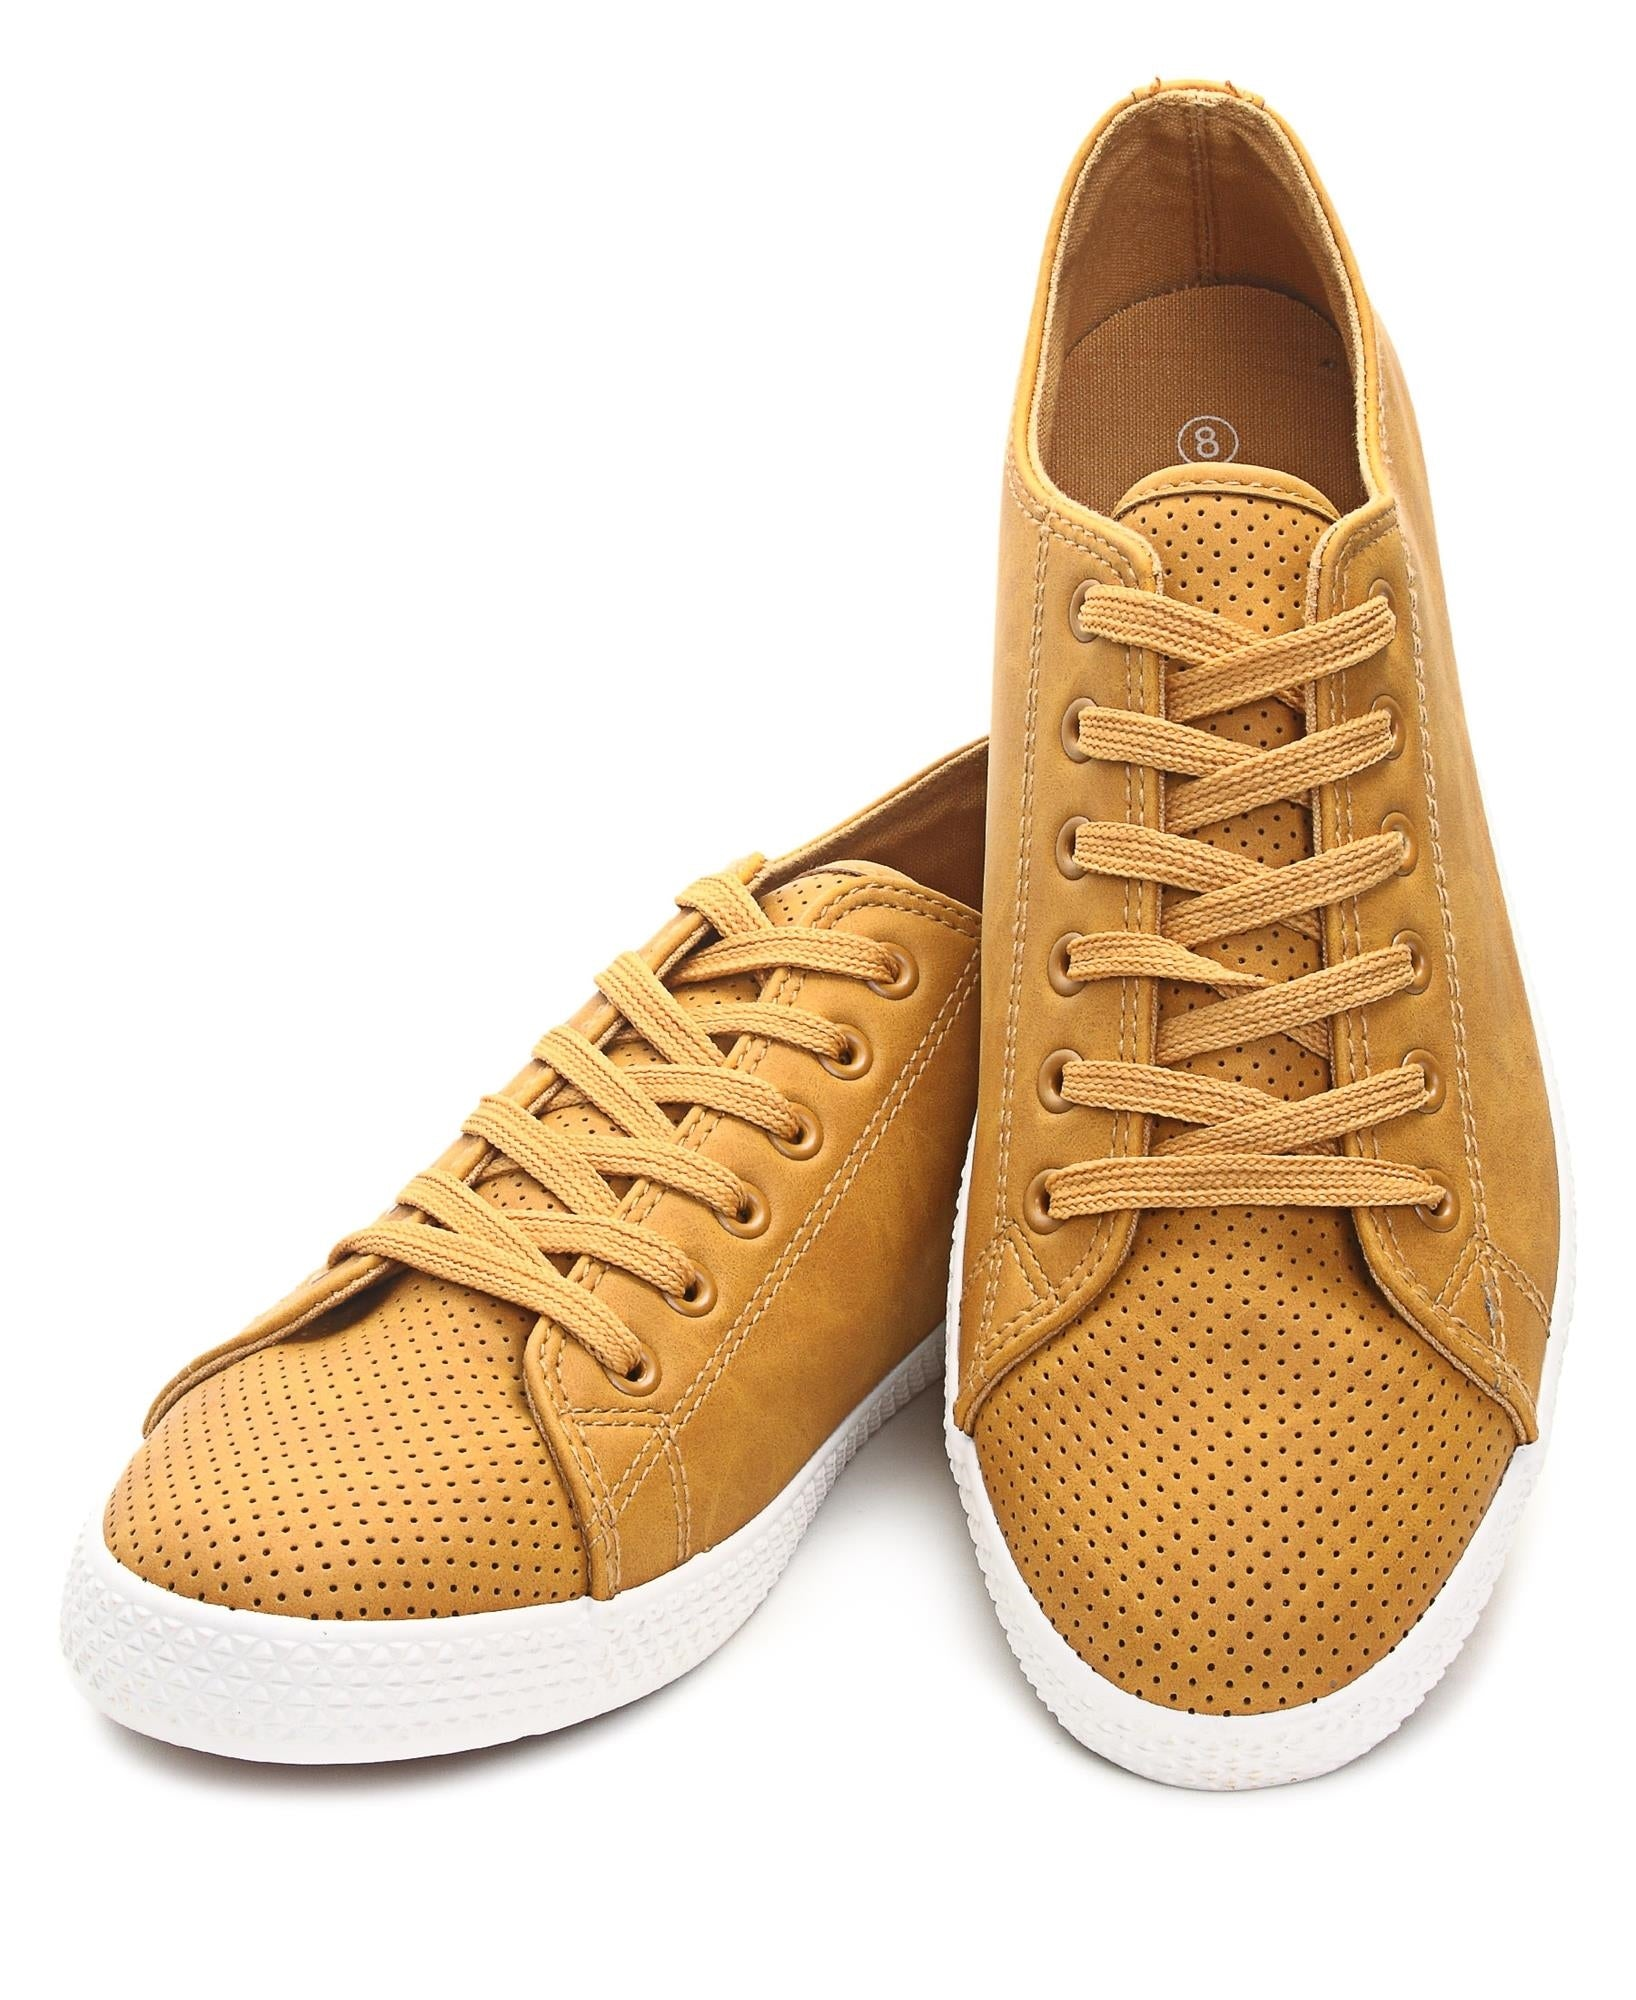 Men's Light Basic Sneakers - Mustard